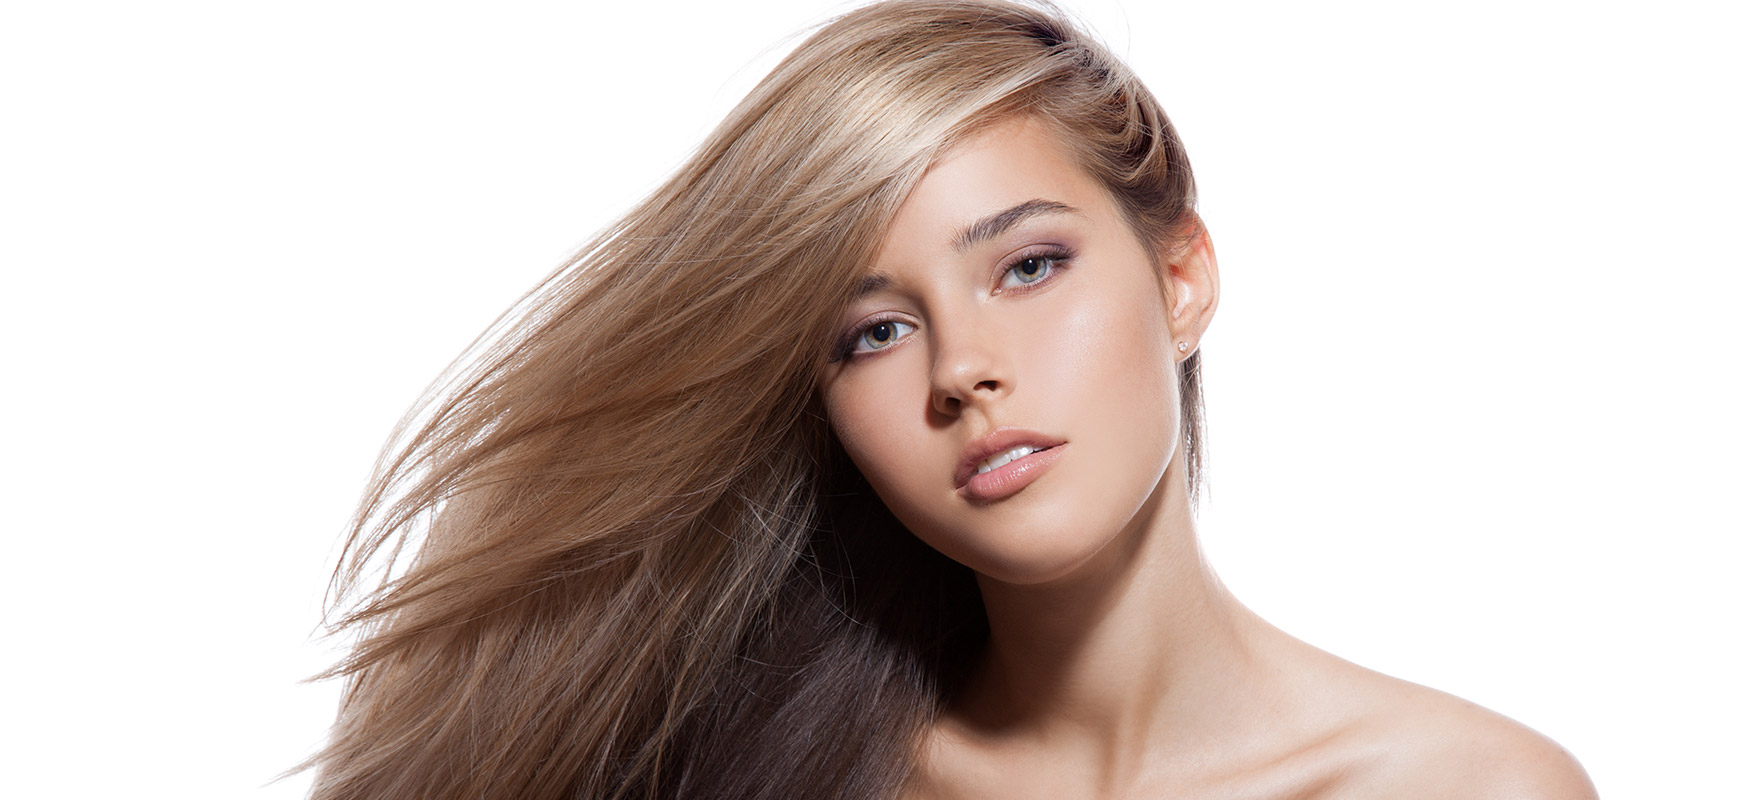 Keratin Treatment | Salon One Wellesley Keratin Treatment Experts